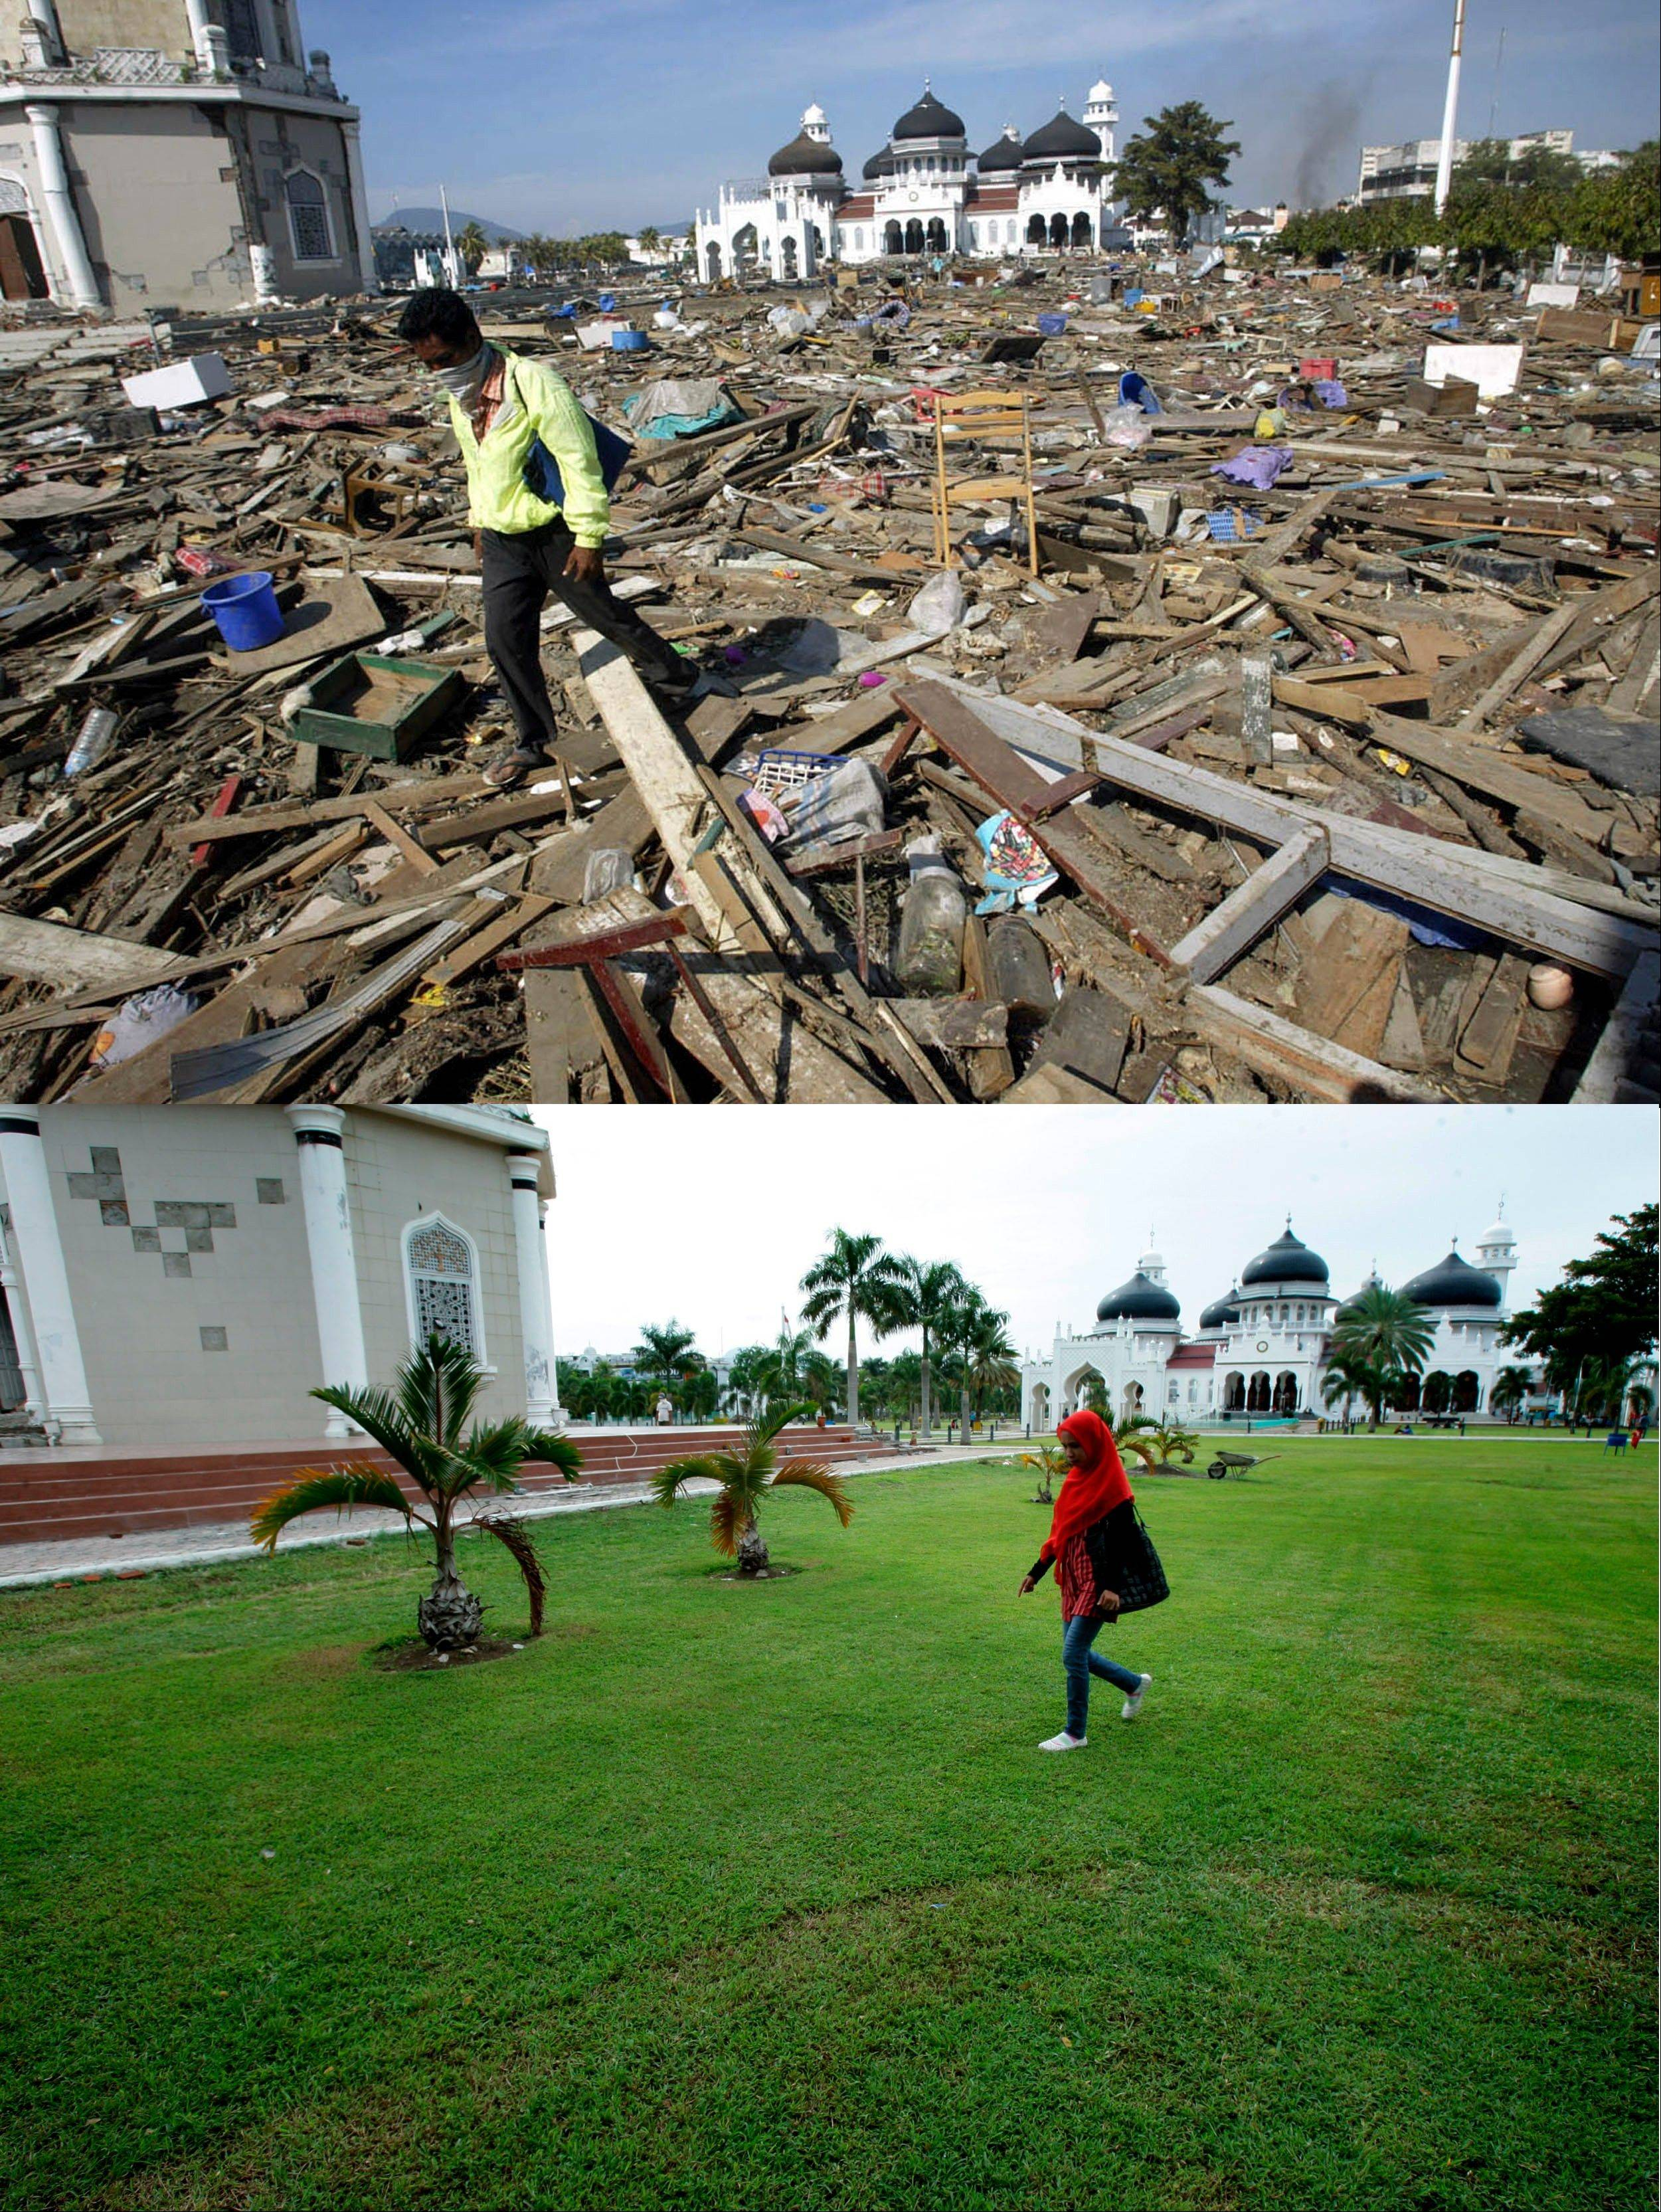 This combination of photos shows an area affected by the Dec. 25, 2004 tsunami which hit Indonesia. The top photo shows debris near the Great Mosque, background, on Dec. 29, 2004, four days after the tsunami. The bottom photo shows the same area on Nov. 19, 2013.